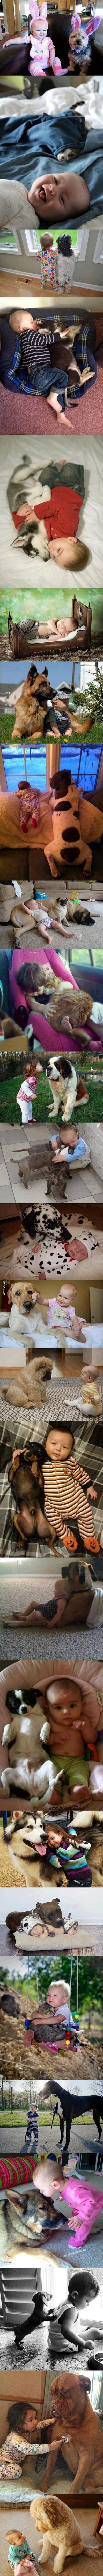 Two of the cutest things in the world? Babies and puppies.